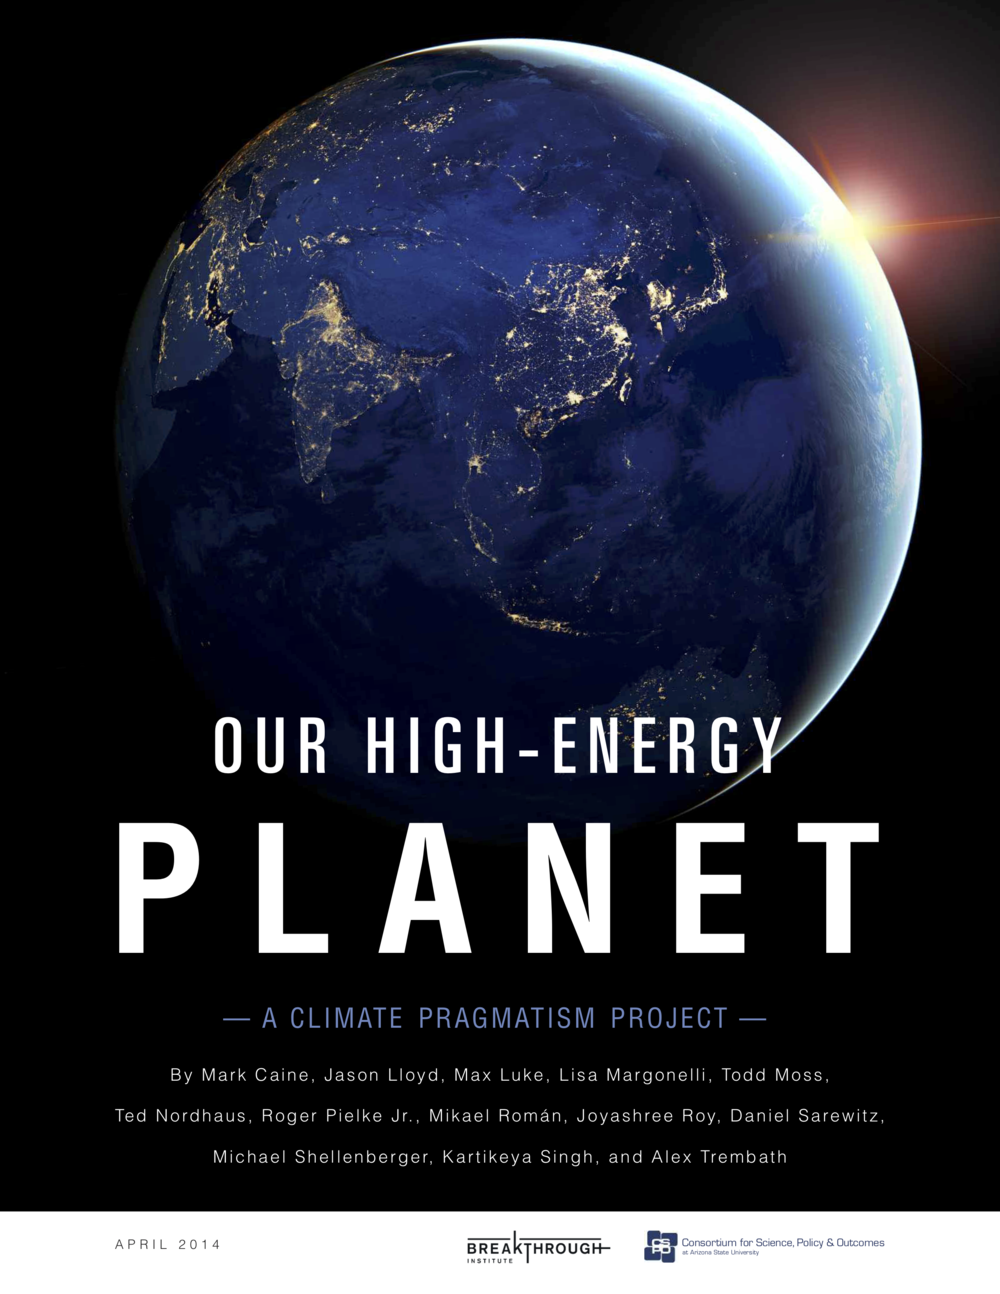 Our High-Energy Planet